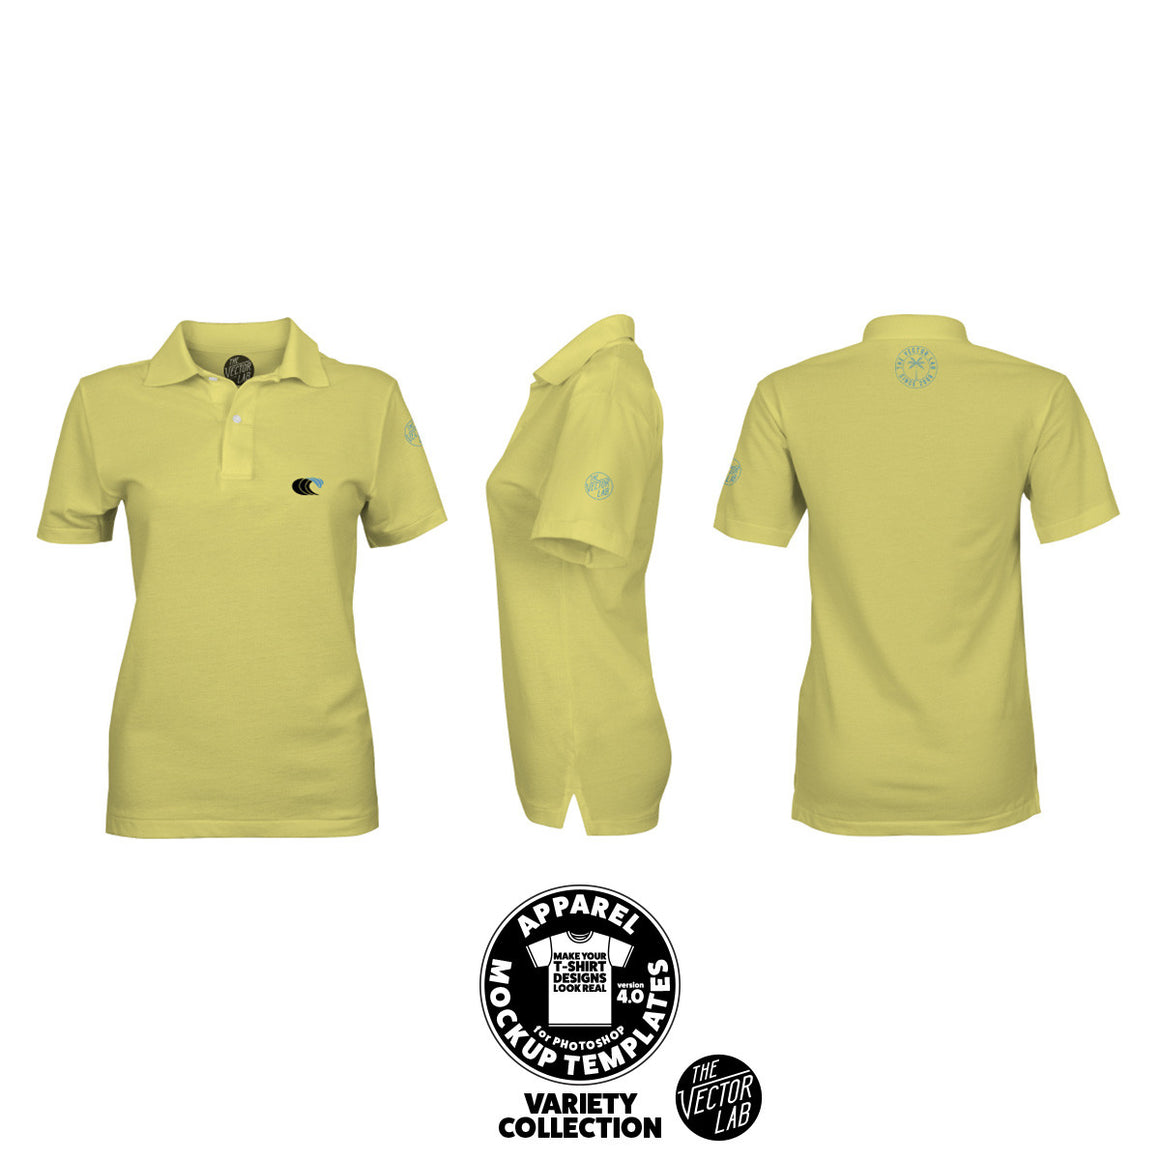 Women's Polo Shirt Mockup Templates for Photoshop